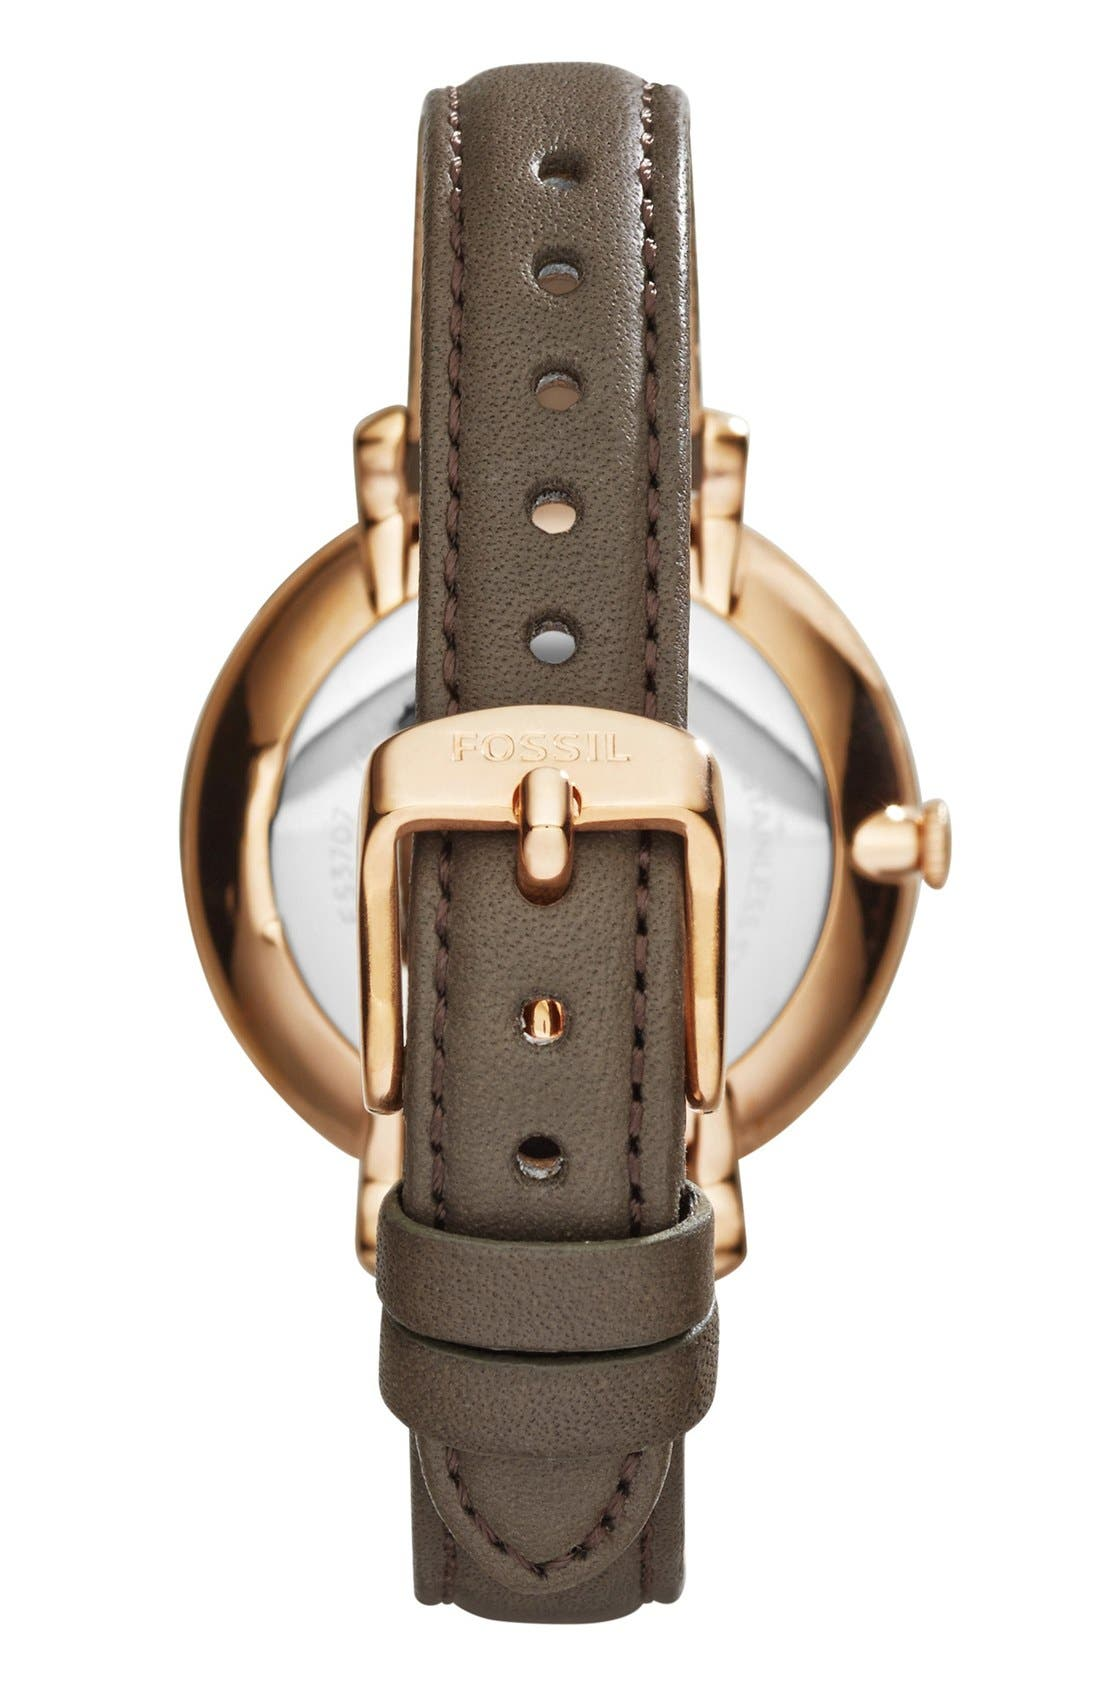 FOSSIL, 'Jacqueline' Round Leather Strap Watch, 36mm, Alternate thumbnail 3, color, IRON/ ROSE GOLD